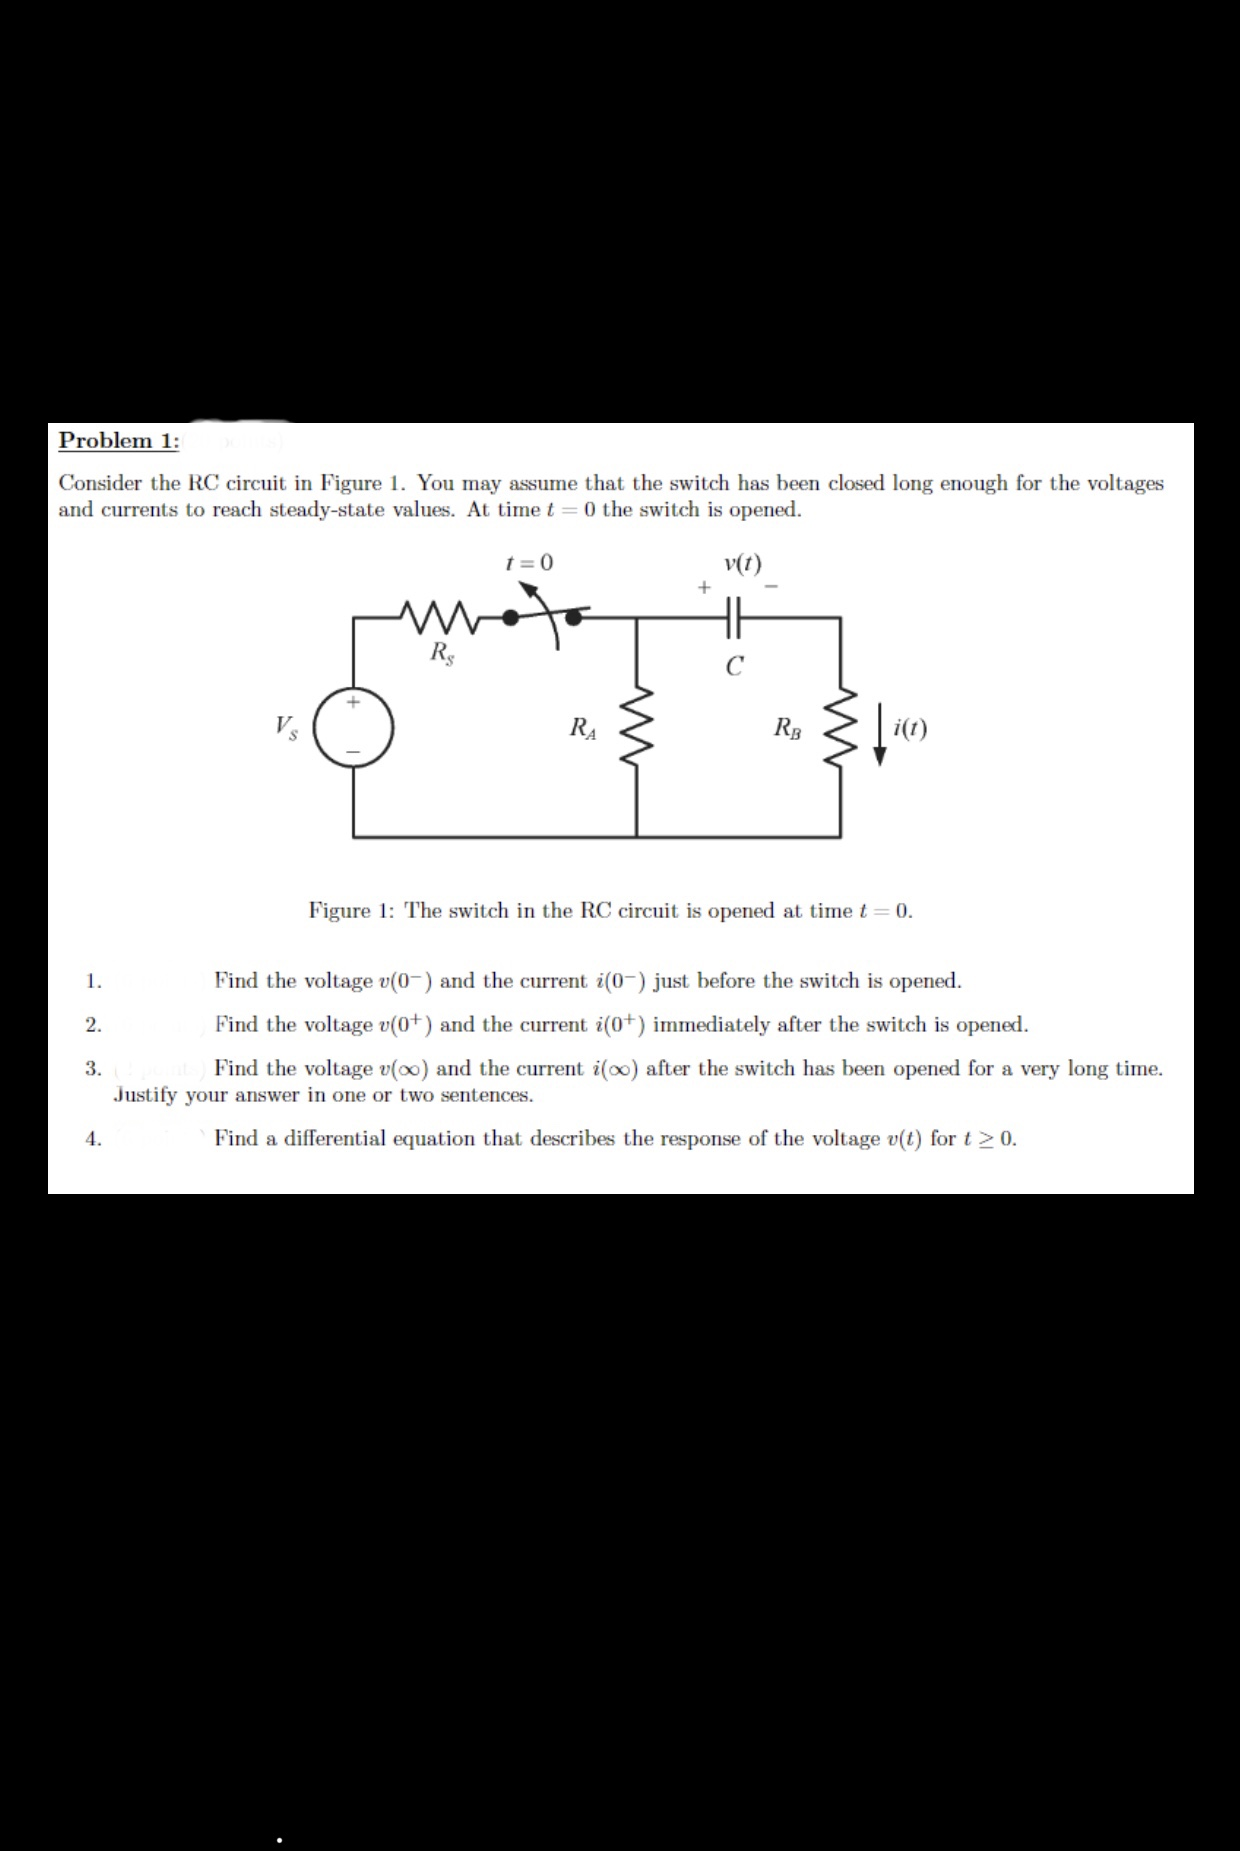 Problem 1: Consider the RC circuit in Figure 1. You may assume that the switch has been closed long enough for the voltages and currents to reach steady-state values. At time t = 0 the switch is opened 0 v(t) Rs i(t) Vs RB RA Figure 1: The switch in the RC circuit is opened at time t 0 Find the voltage v(0 and the current i(0 just before the switch is opened 1. Find the voltage v(0) and the current i(0) immediately after the switch is opened 2 3 Justify your answer in one or two sentences Find the voltage v(oo) and the current i(oo) after the switch has been opened for a very long time. Find a differential equation that describes the response of the voltage v(t) for t 2 0. 4